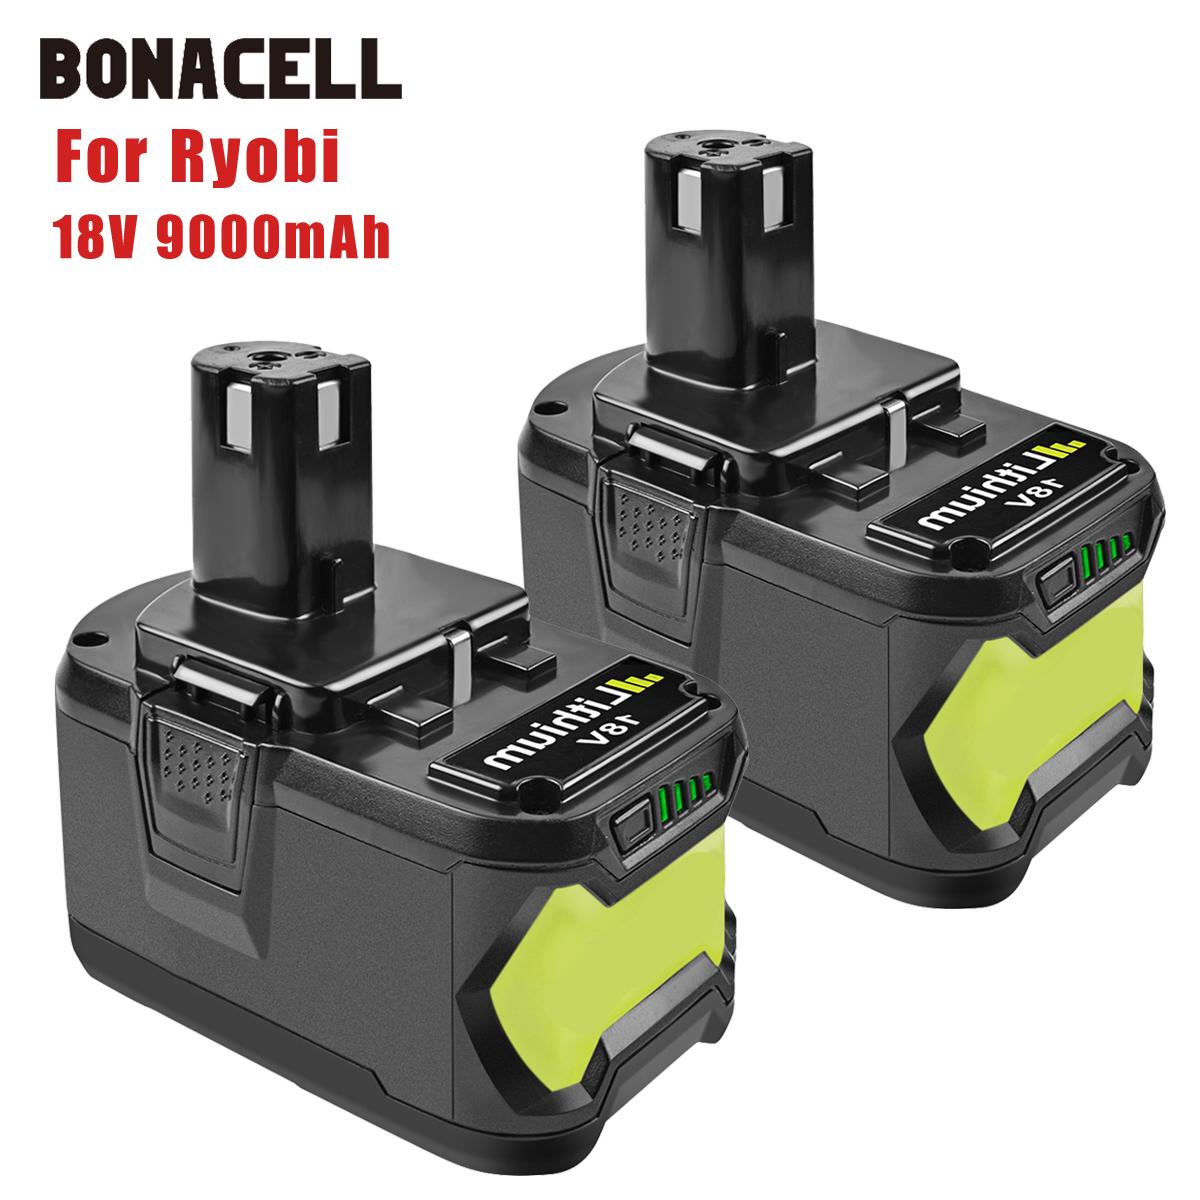 Bonacell 18V 9000mAh Li-Ion P 108 P108 Rechargeable Battery For Ryobi Battery RB18L40 P2000 P310 For BIW180 L70